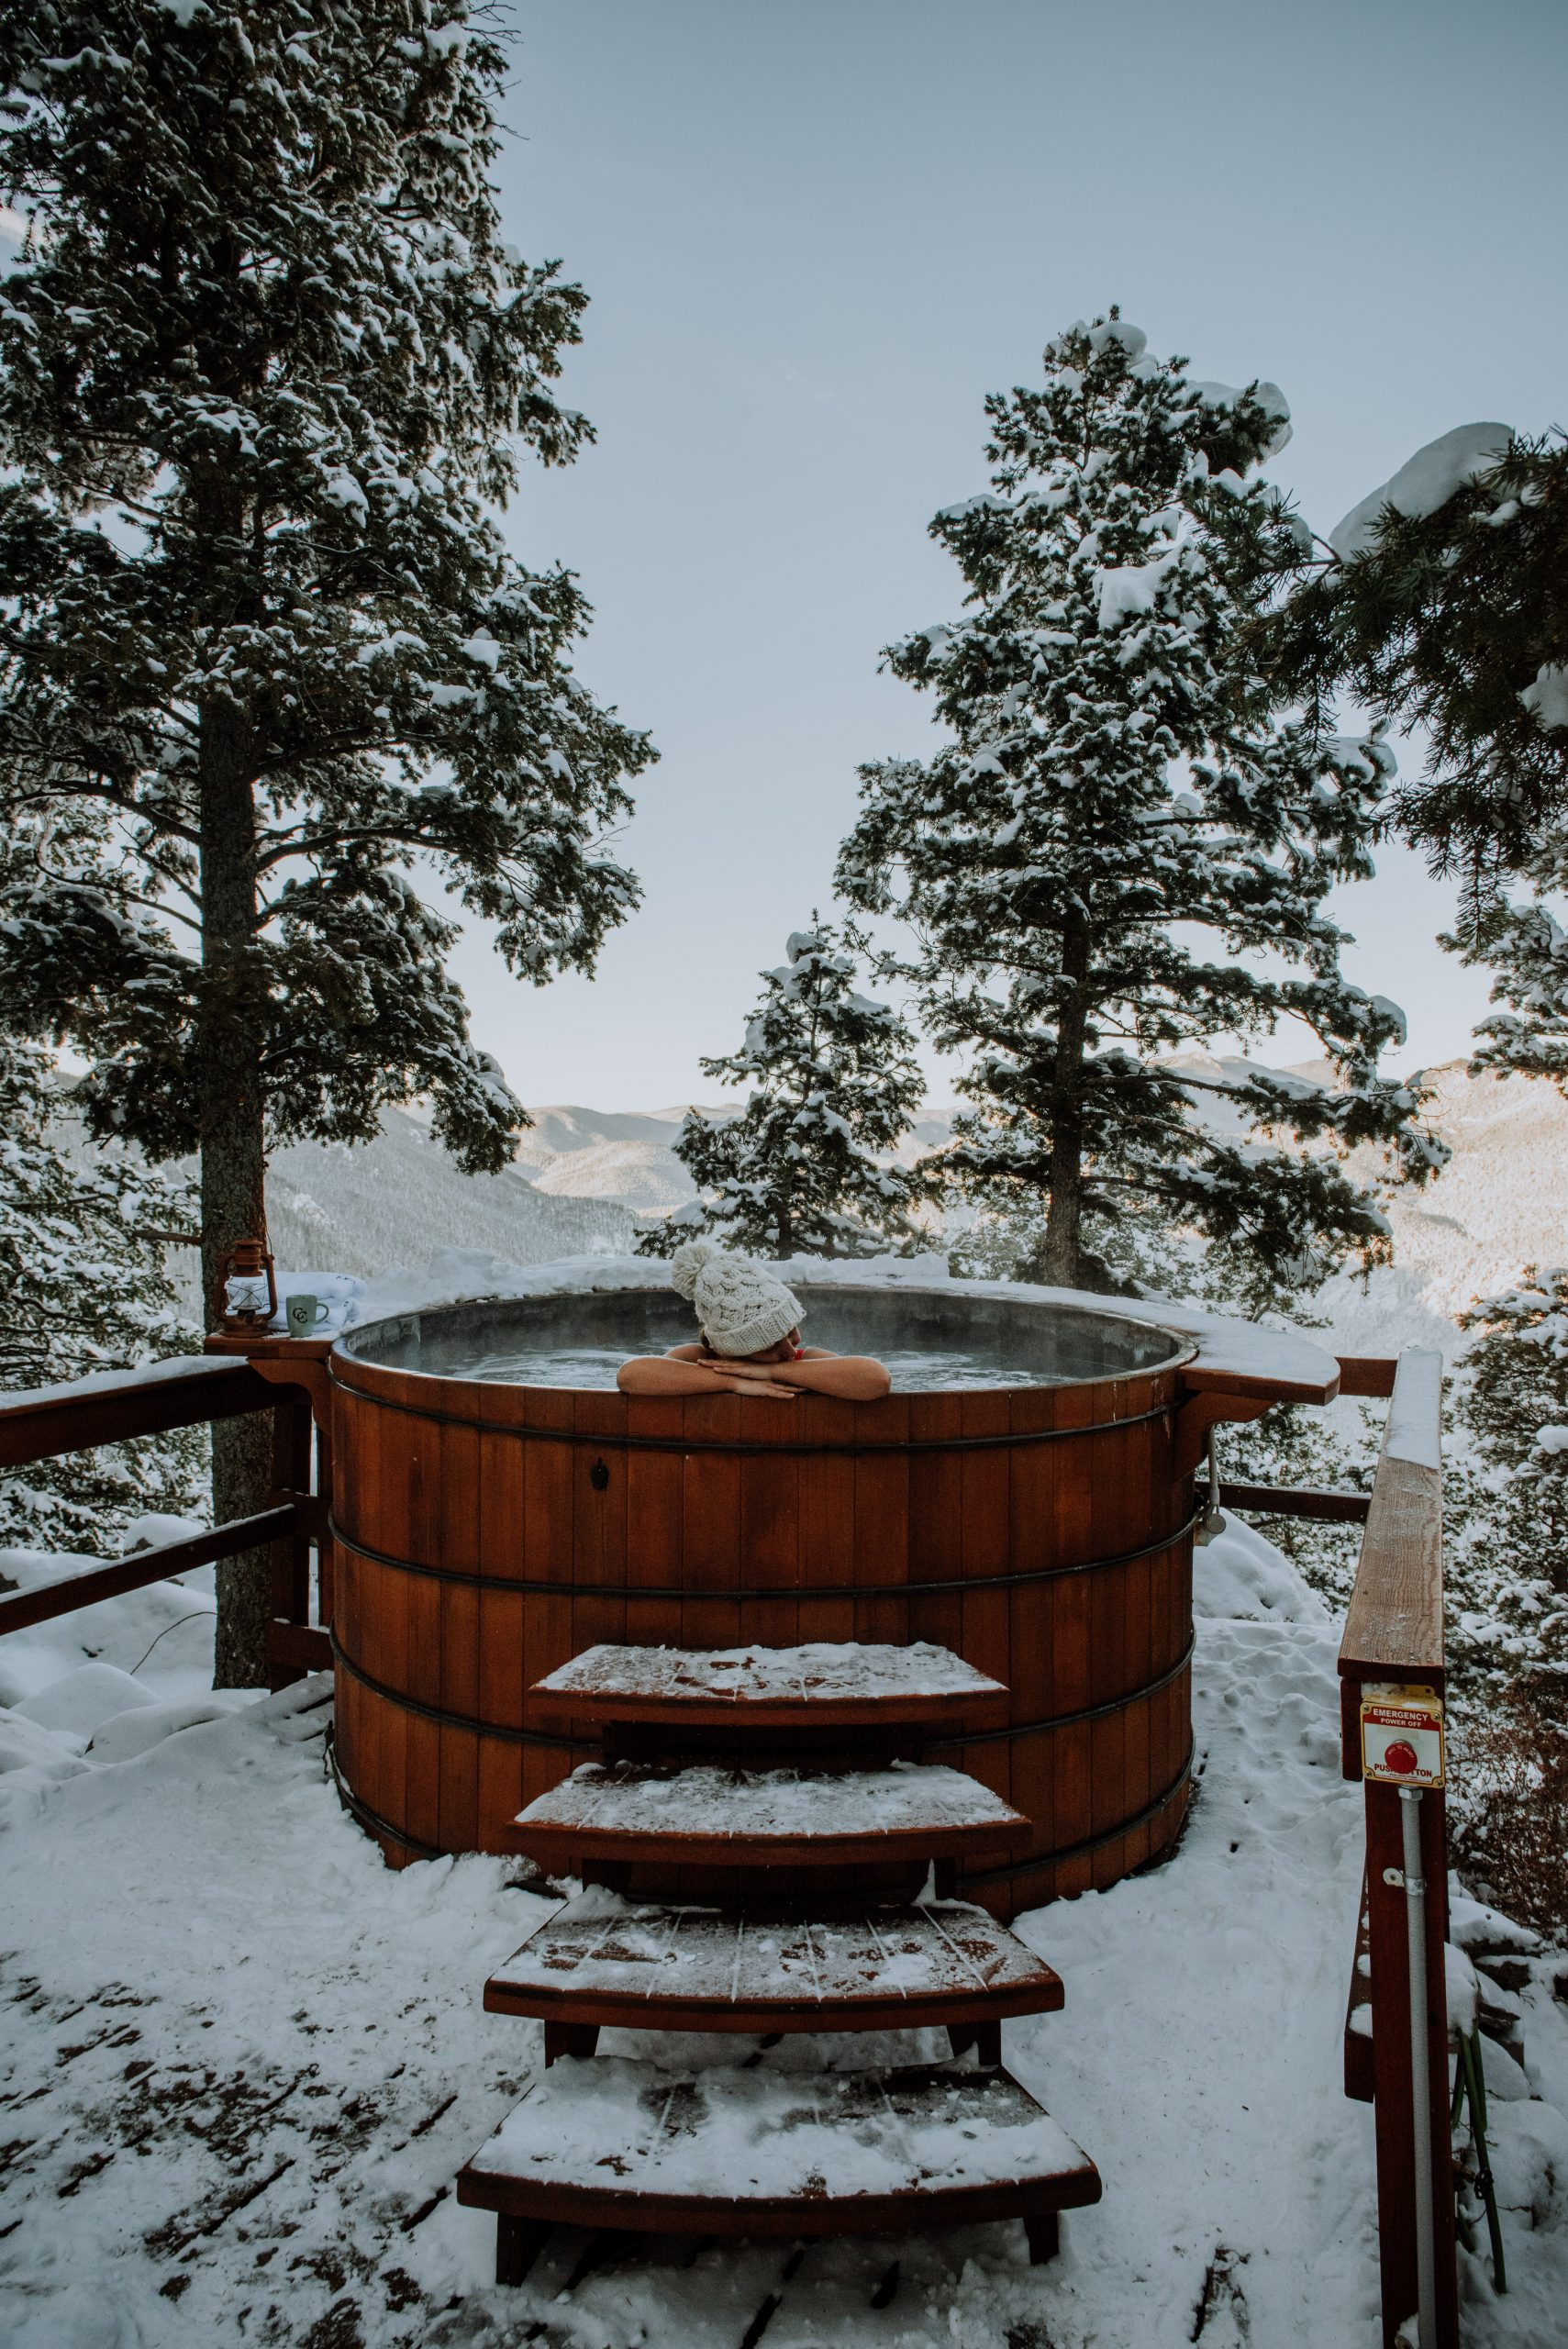 The Broadmoor cloud camp rocky mountain views and hot tub